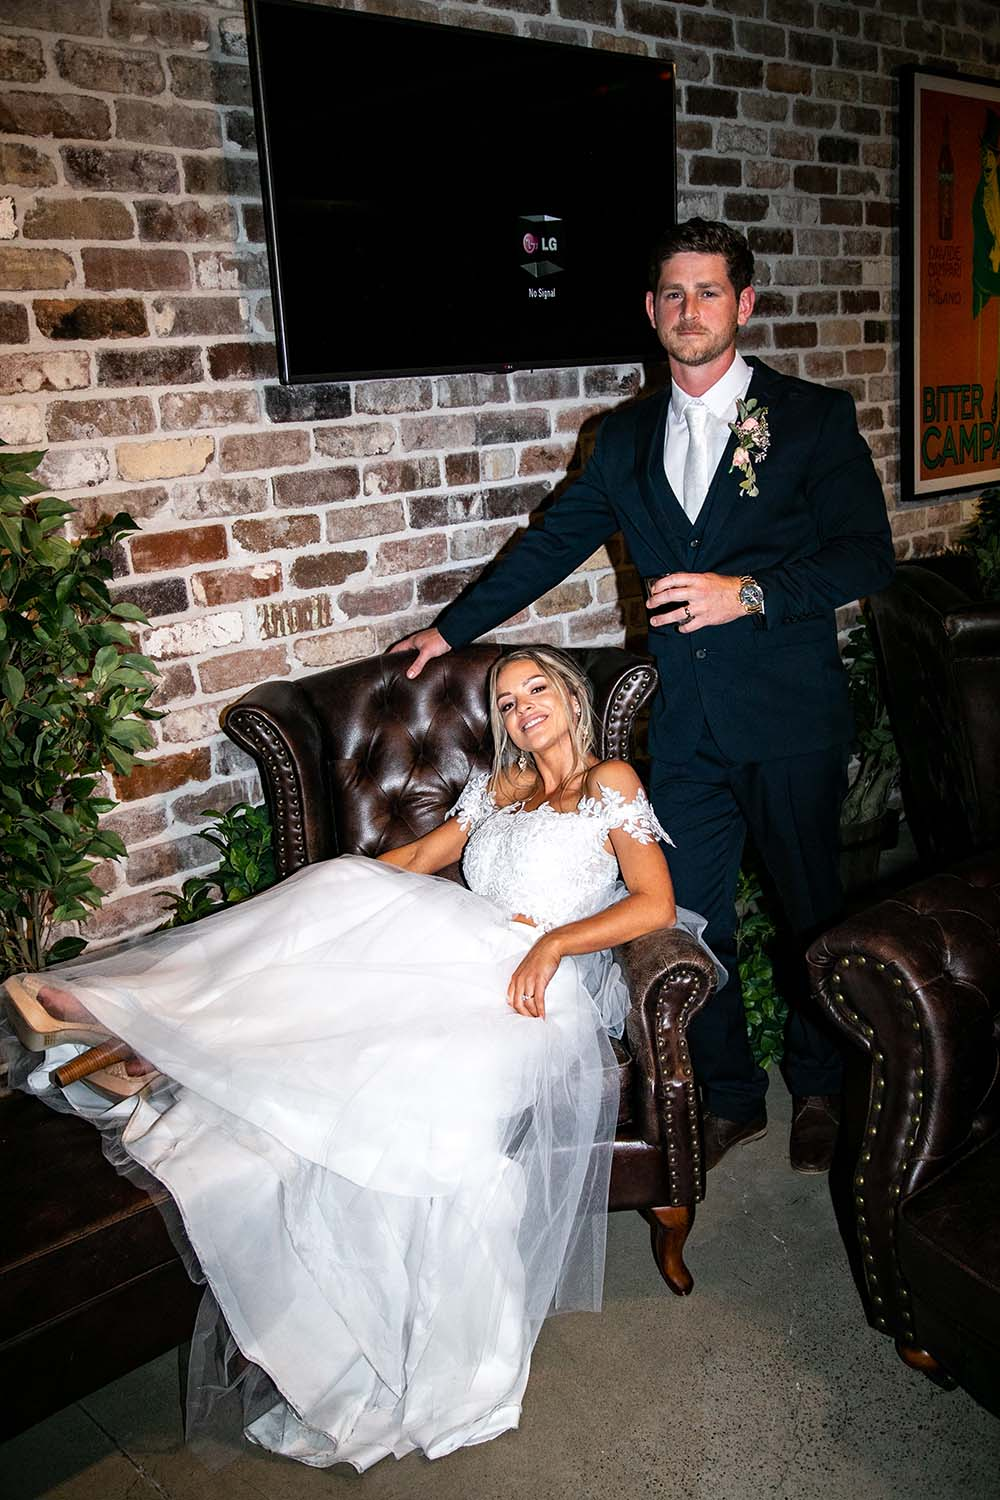 Wedding Photography - Bride in chair and groom